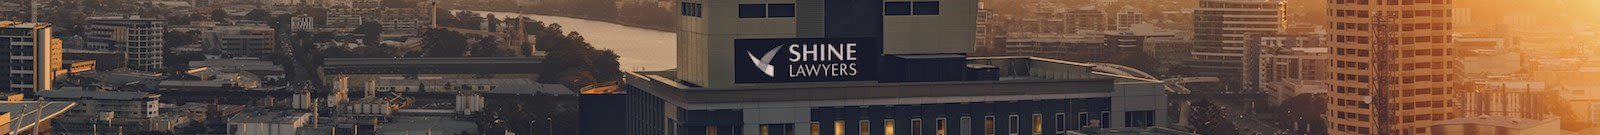 Shine Lawyers | cyber bully lawyer | Shine Lawyers